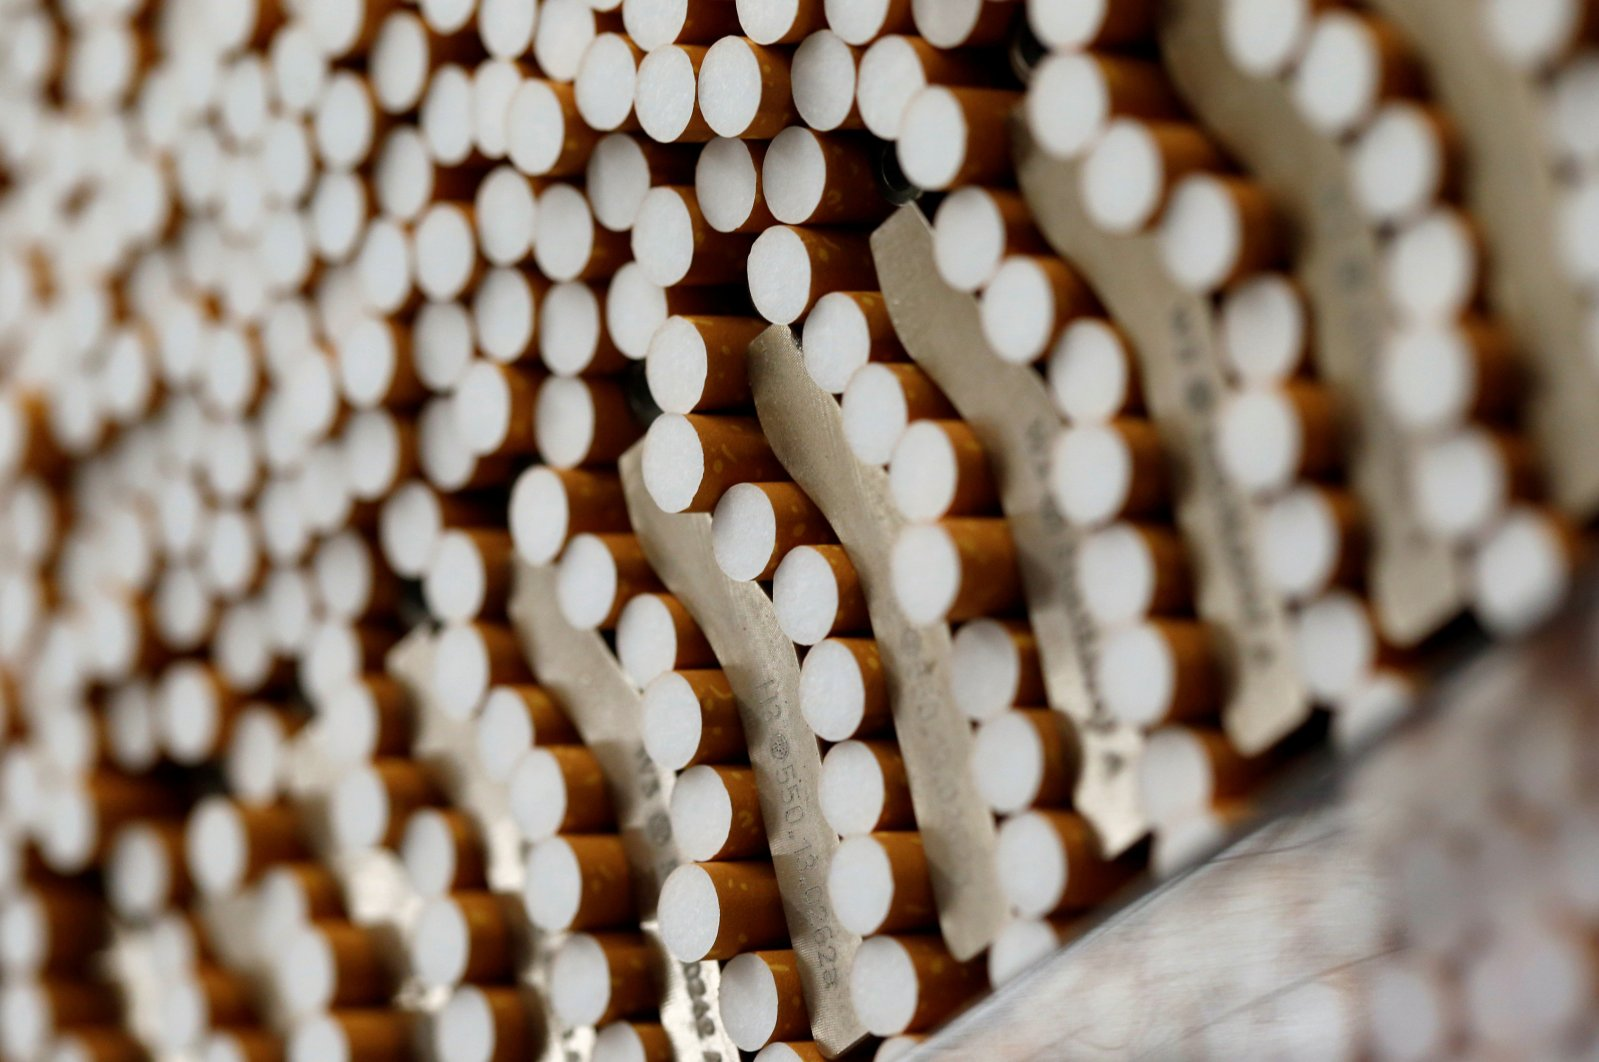 Cigarettes are seen during the manufacturing process in the British American Tobacco Cigarette Factory (BAT) in Bayreuth, southern Germany, April 30, 2014. (Reuters Photo)